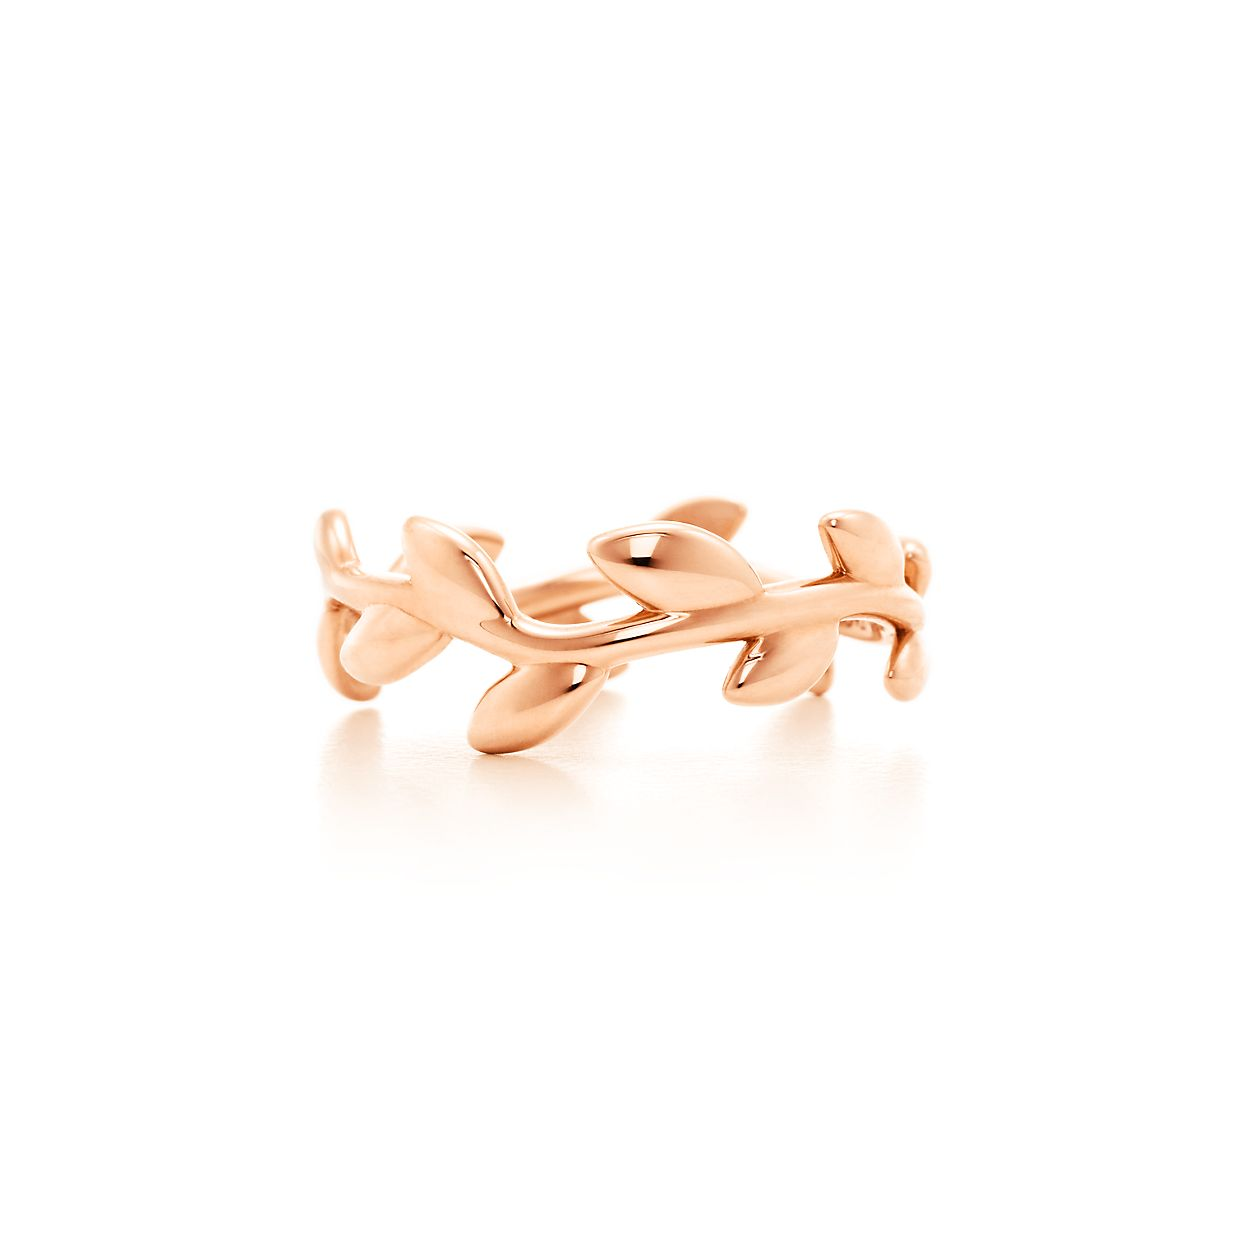 Paloma Picasso Olive Leaf band ring in 18k rose gold - Size 6 Tiffany & Co. WkJLna